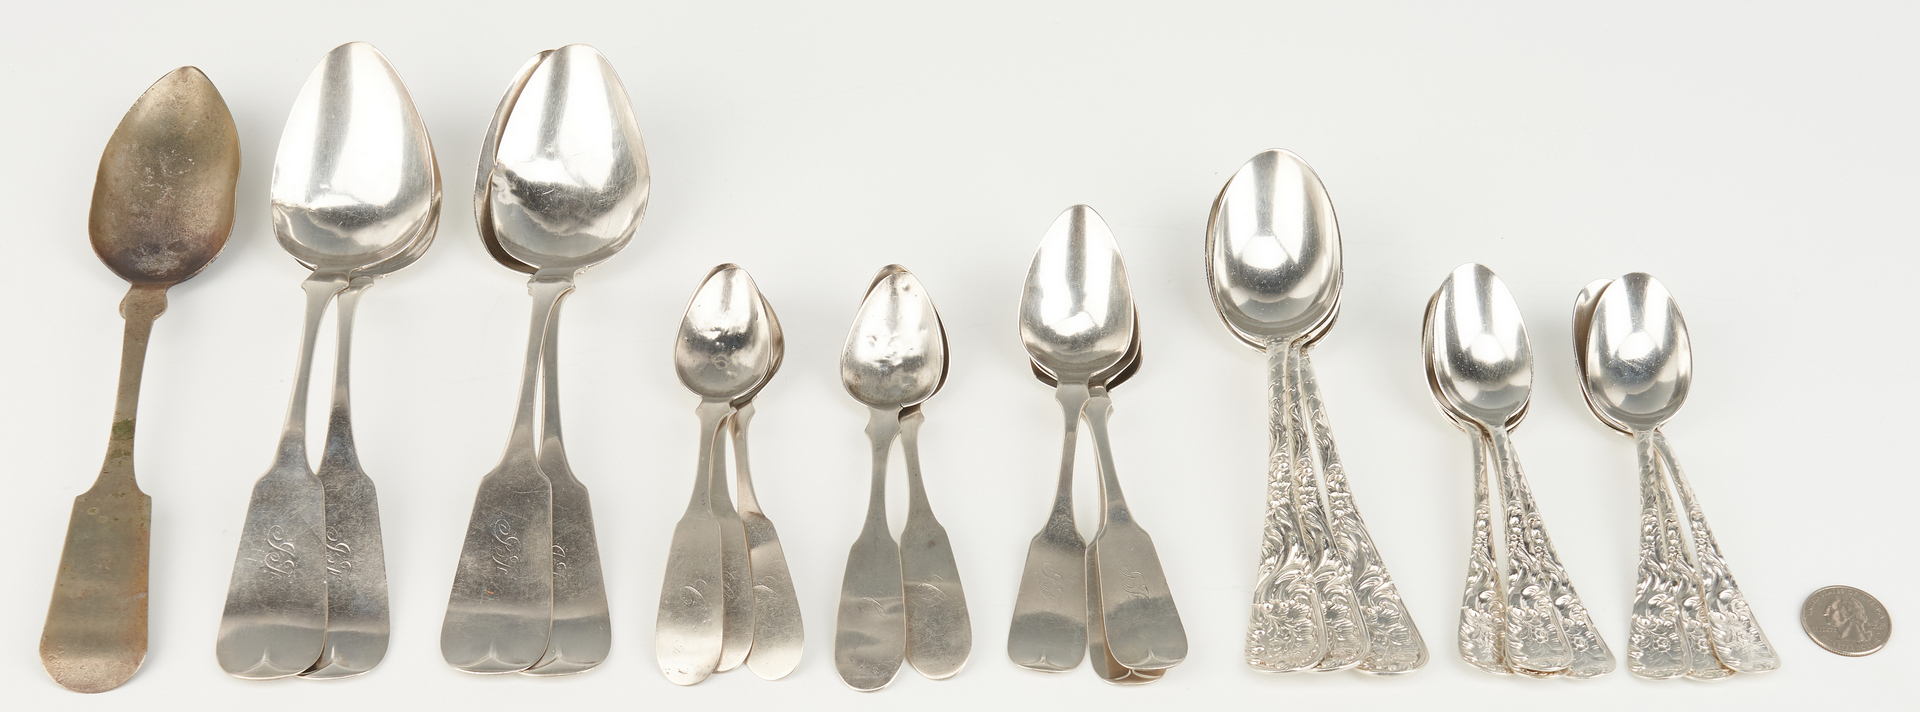 Lot 84: 19th c. TN Silver Flatware, incl. Negrin, Hope